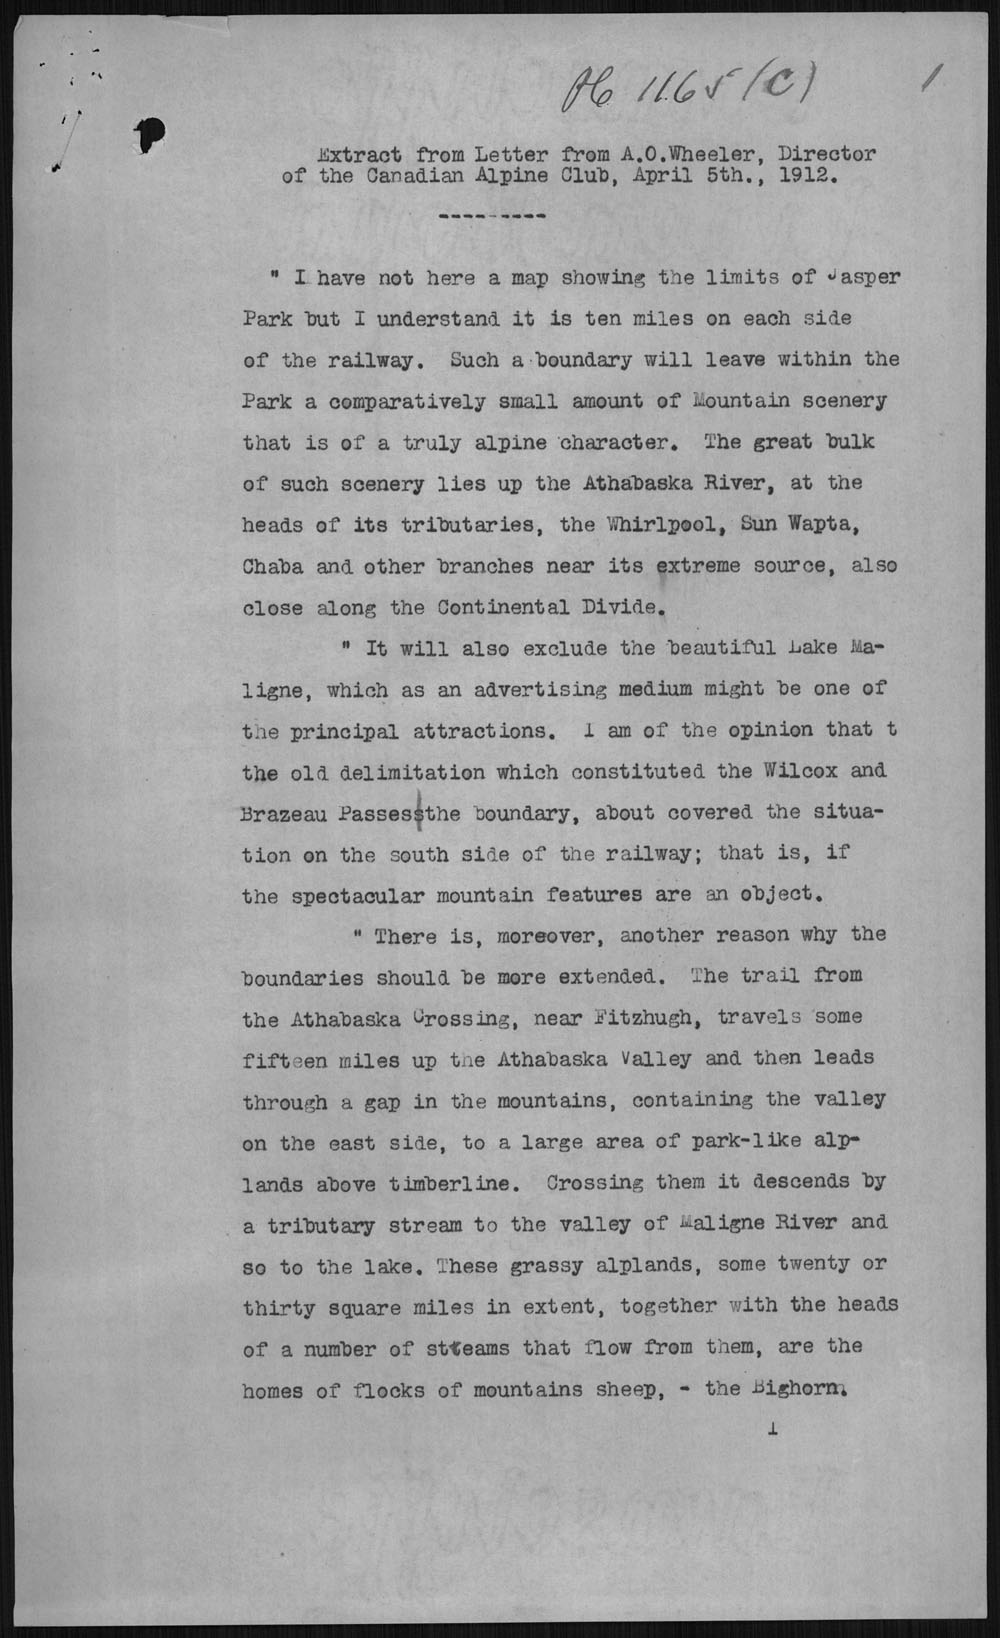 Digitized page of Orders in Council for Image No.: e010877249-v8